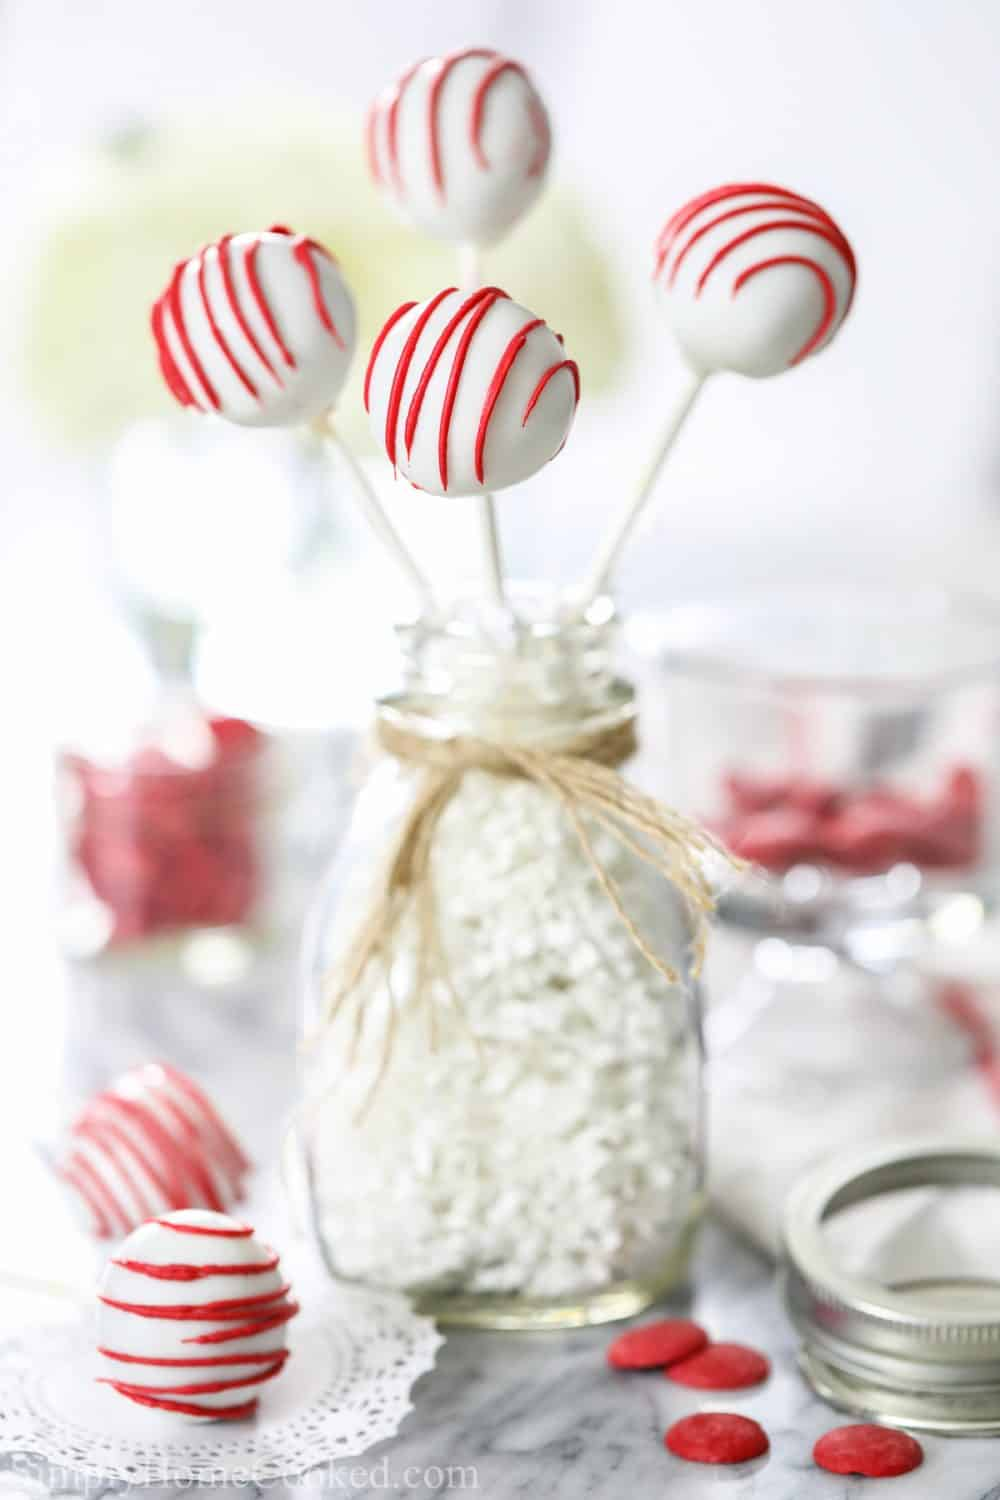 red velvet cake pops in a glass bottle with burlap string around it.